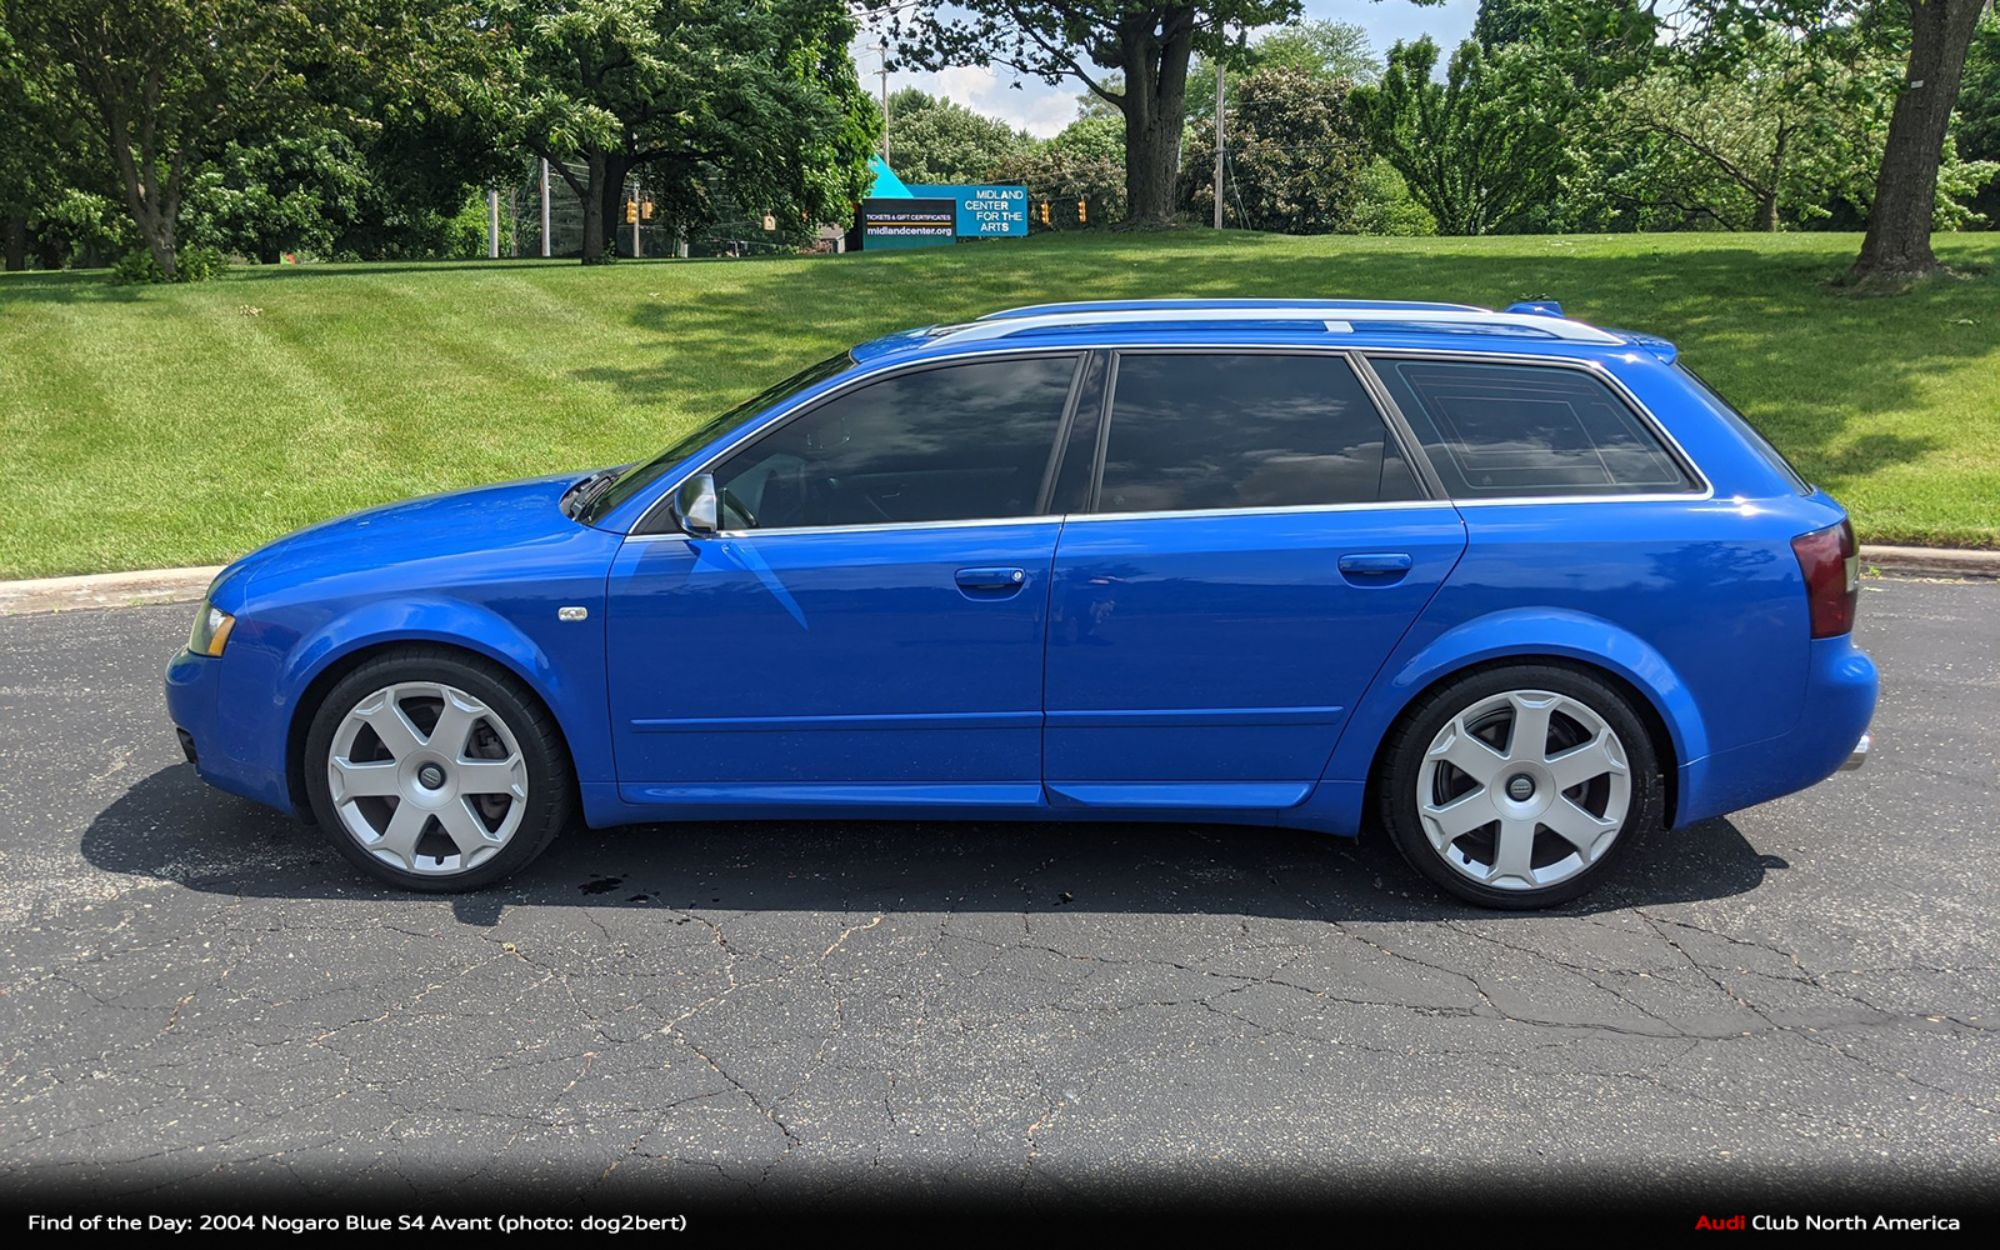 Find of the Day: 2004 Nogaro Blue S4 Avant 6sp